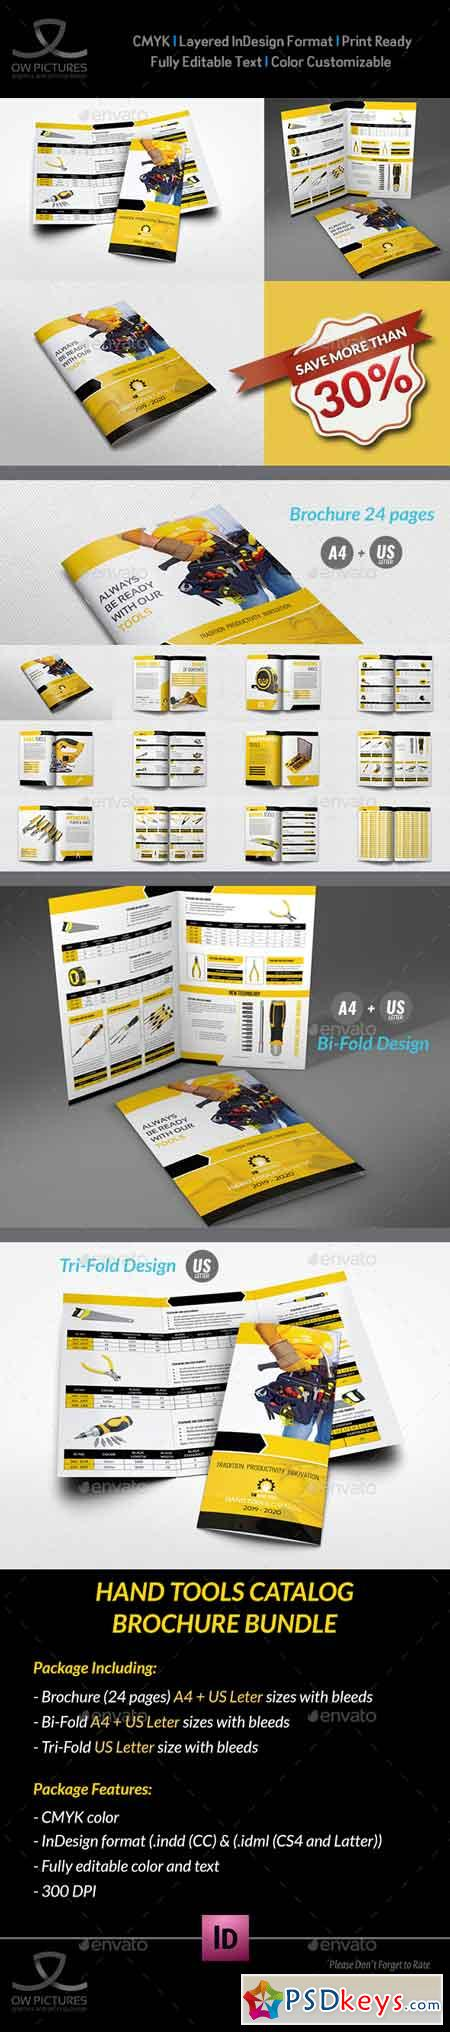 Hand Tools Catalog Brochure Bundle 20171044